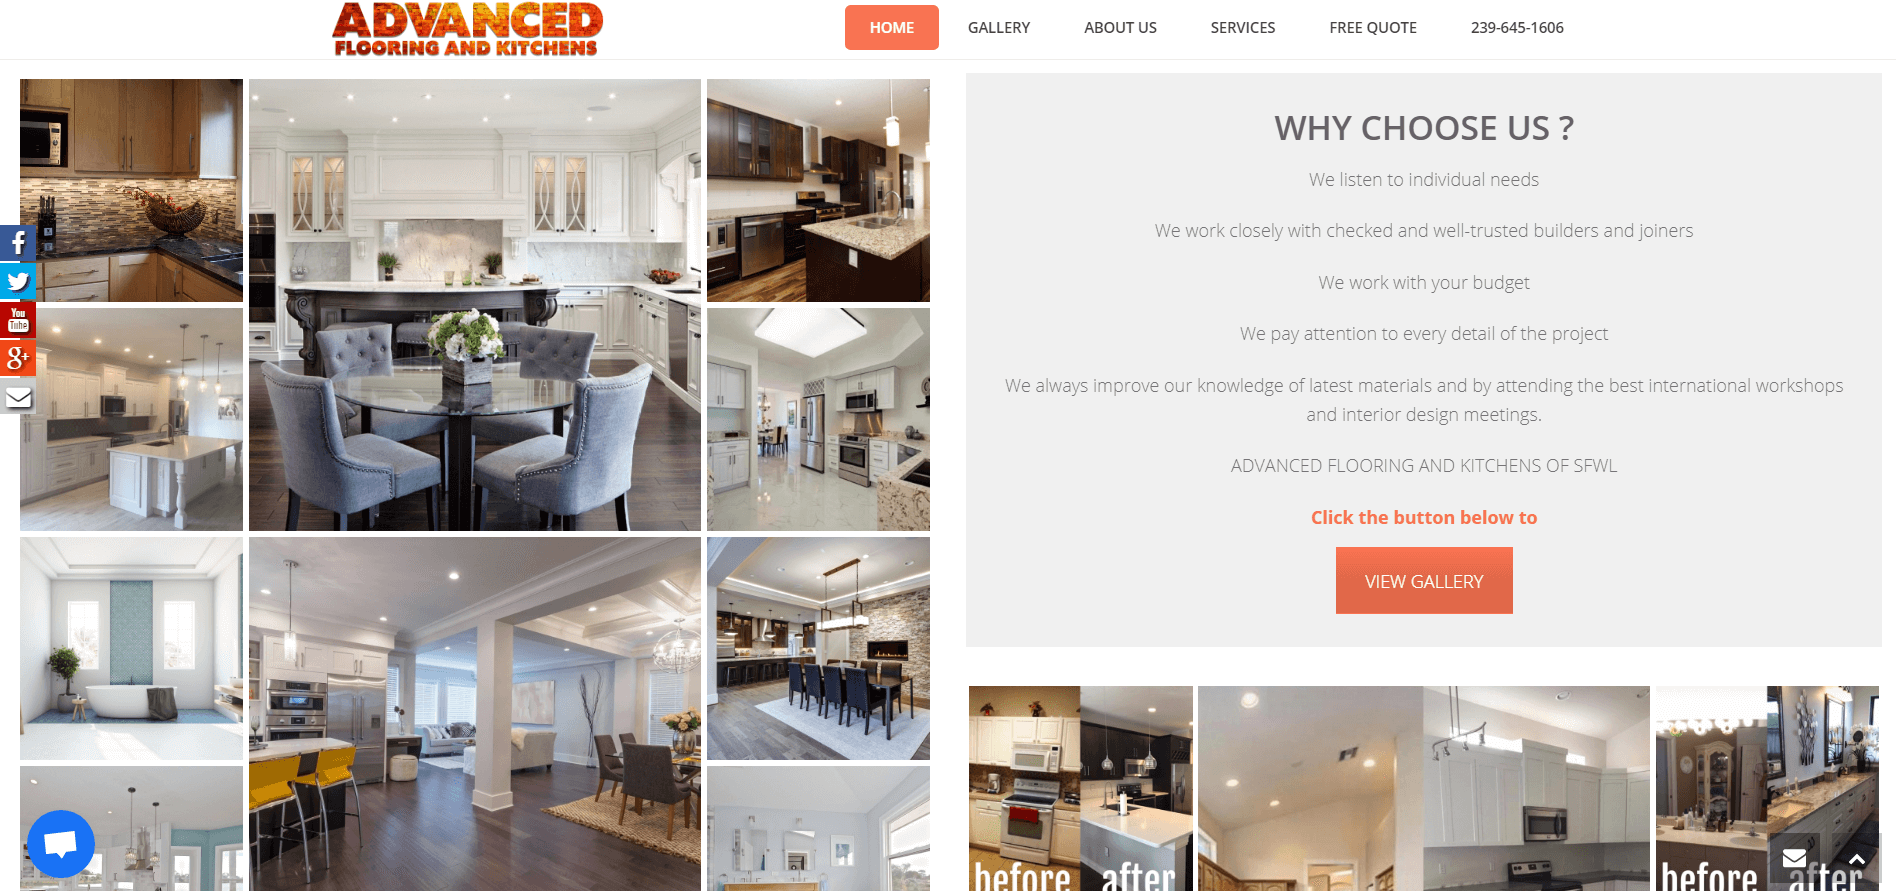 advanced flooring and kitchens why choose page